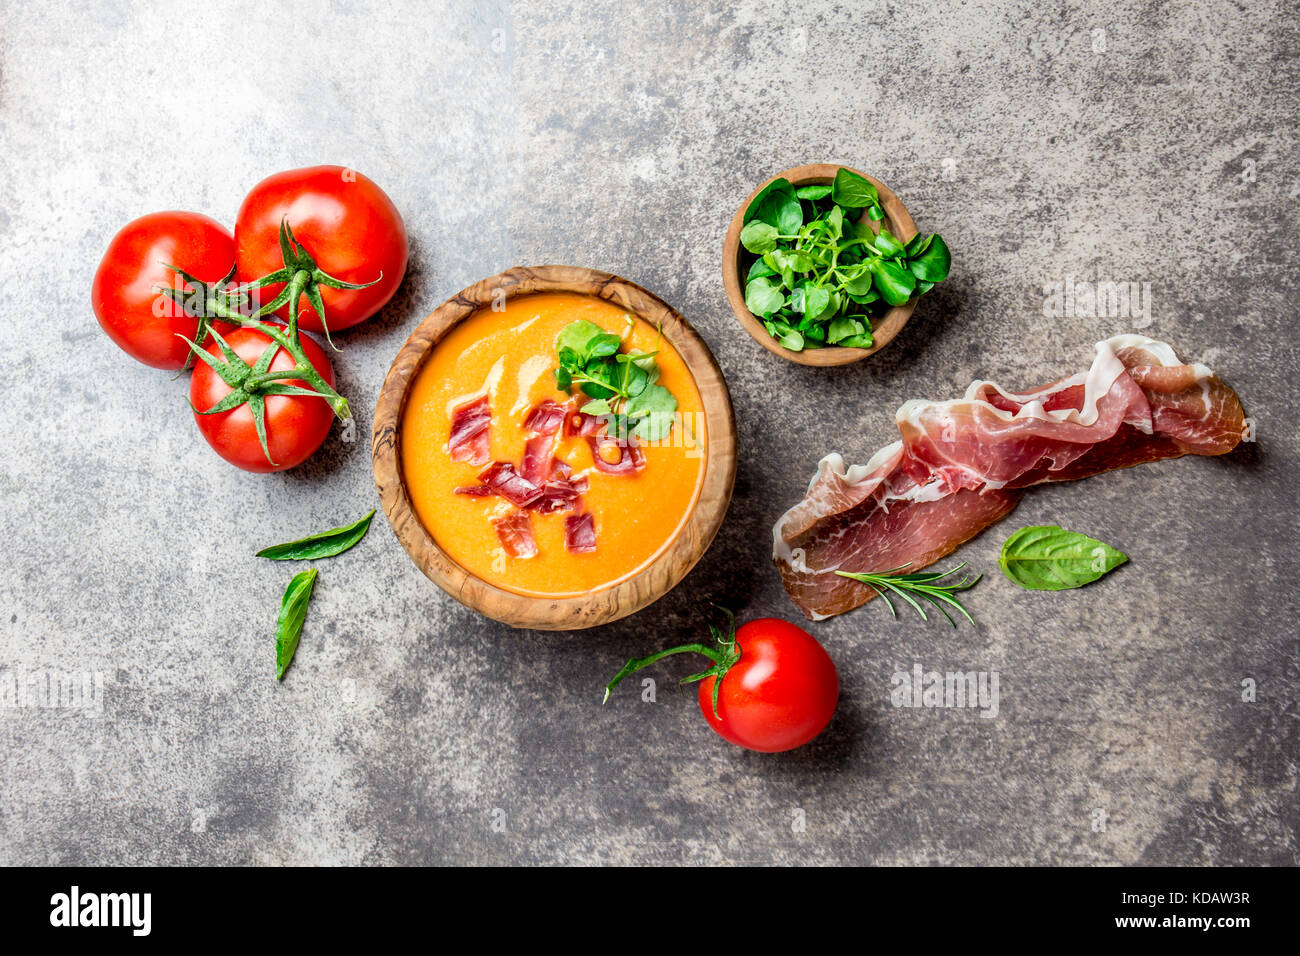 Spanish tomato soup Salmorejo served in olive wooden bowl with ham jamon serrano on stone background. Top view. - Stock Image